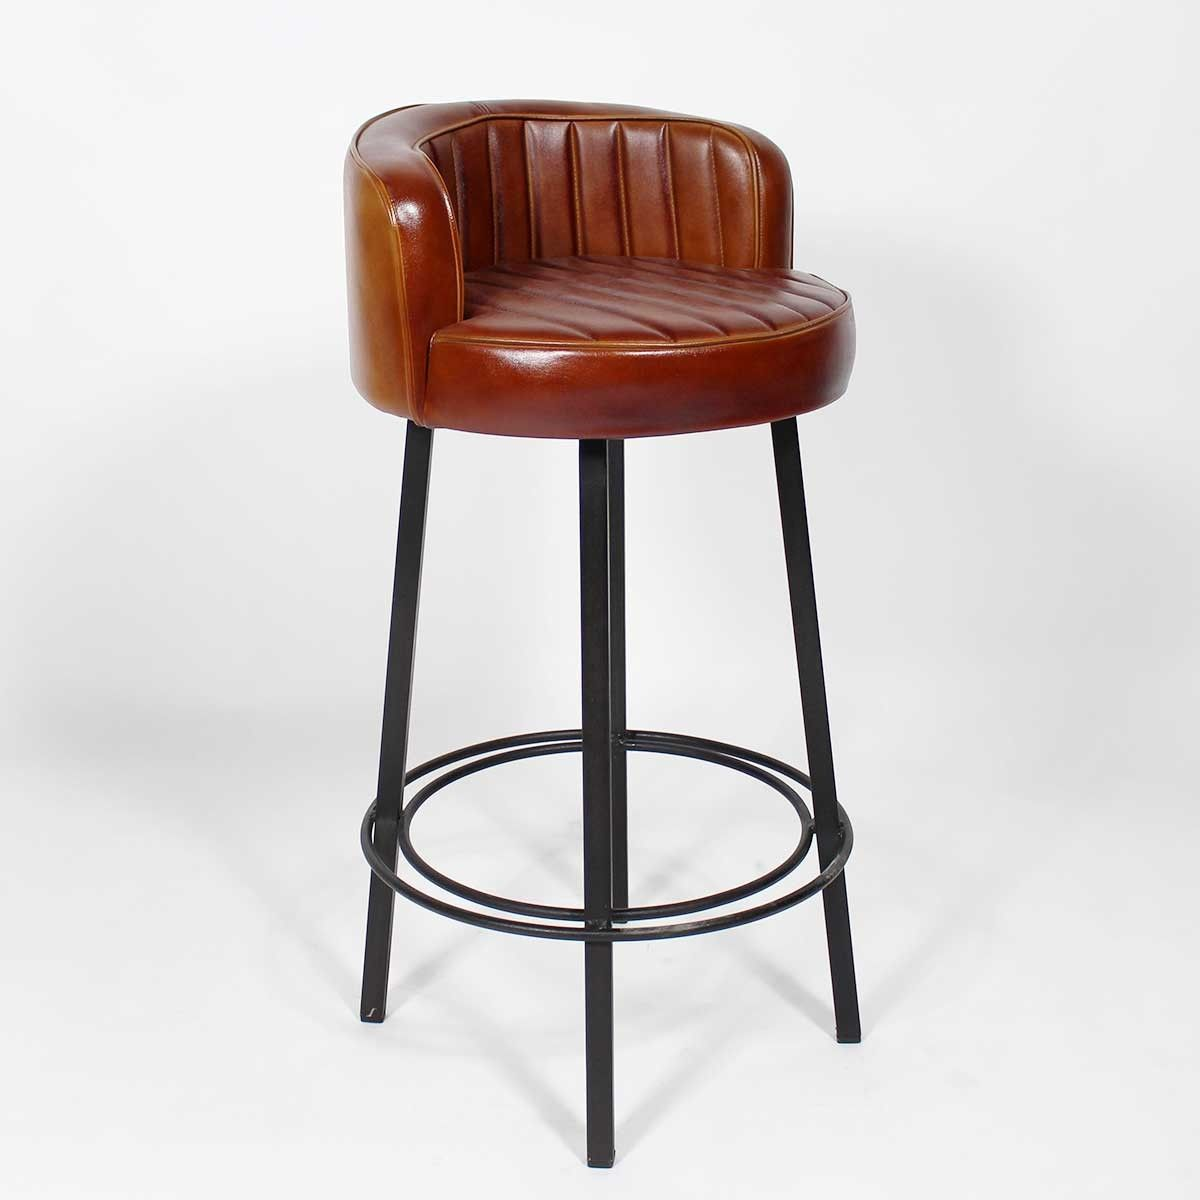 tabouret de bar industriel diner tabourets de bar. Black Bedroom Furniture Sets. Home Design Ideas